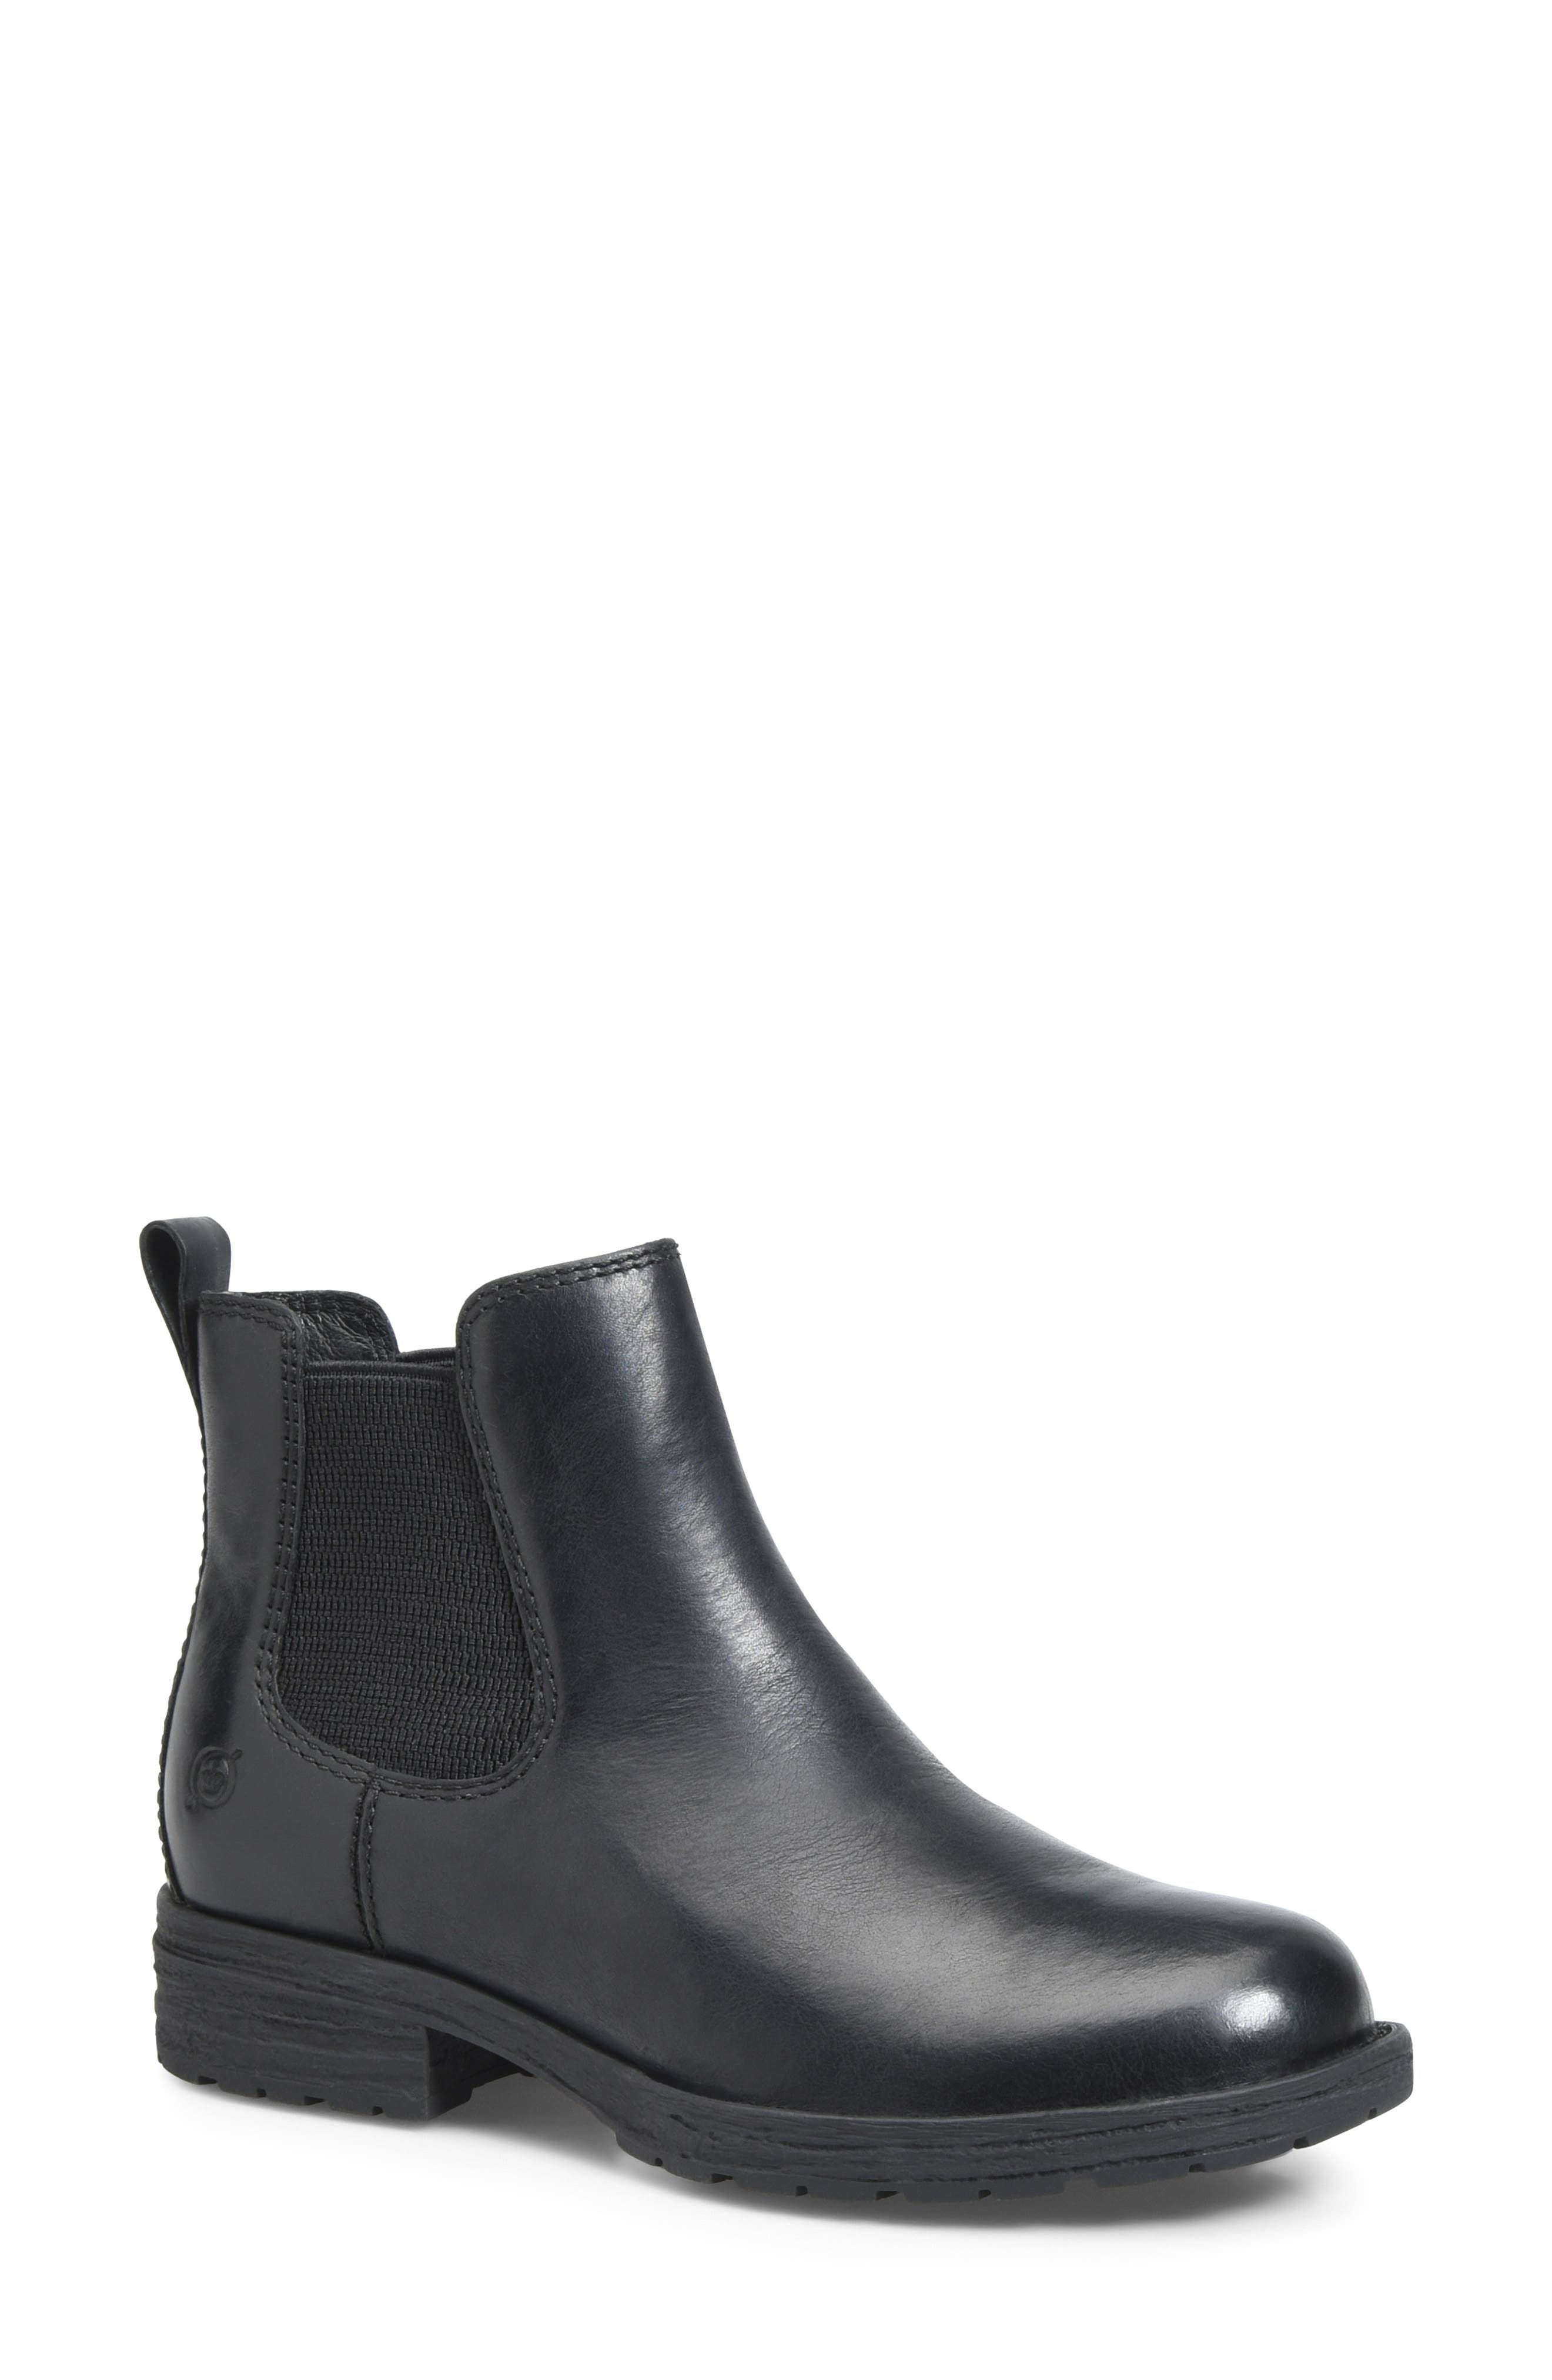 Cove Waterproof Chelsea Boot,                             Main thumbnail 1, color,                             BLACK DISTRESSED LEATHER